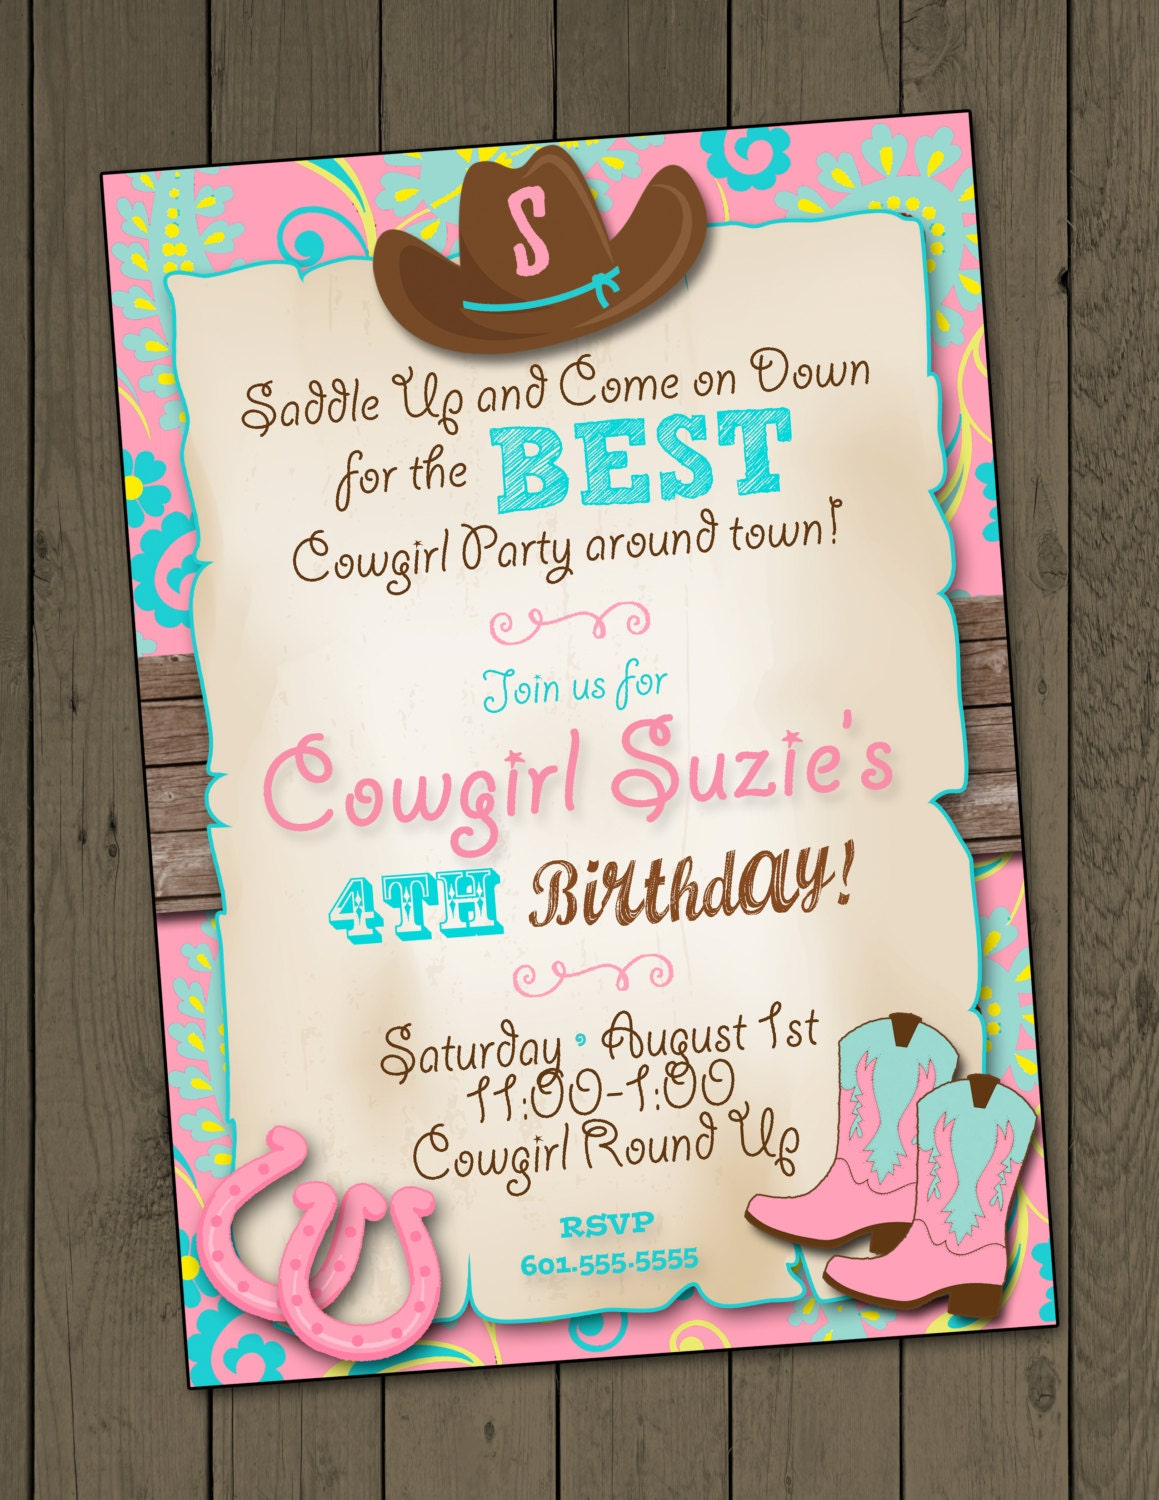 Cowgirl Invitation Cowgirl Birthday Party Invitation Cowgirl | Etsy